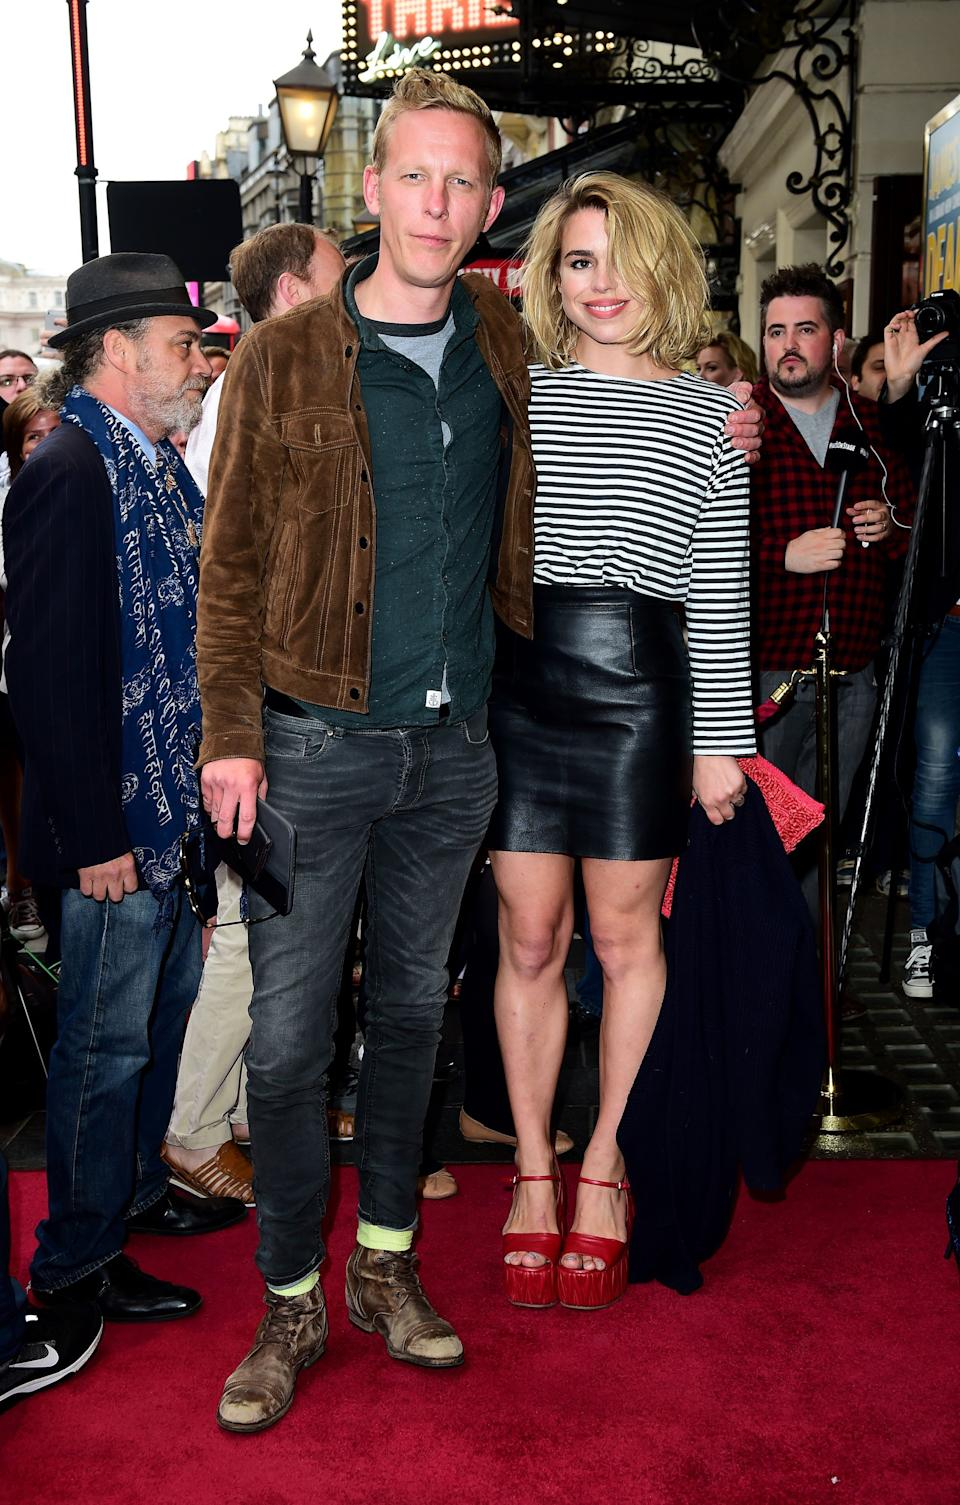 Laurence Fox (left) and Billie Piper attending the first night of new play Dear Lupin at the Apollo Theatre, London.